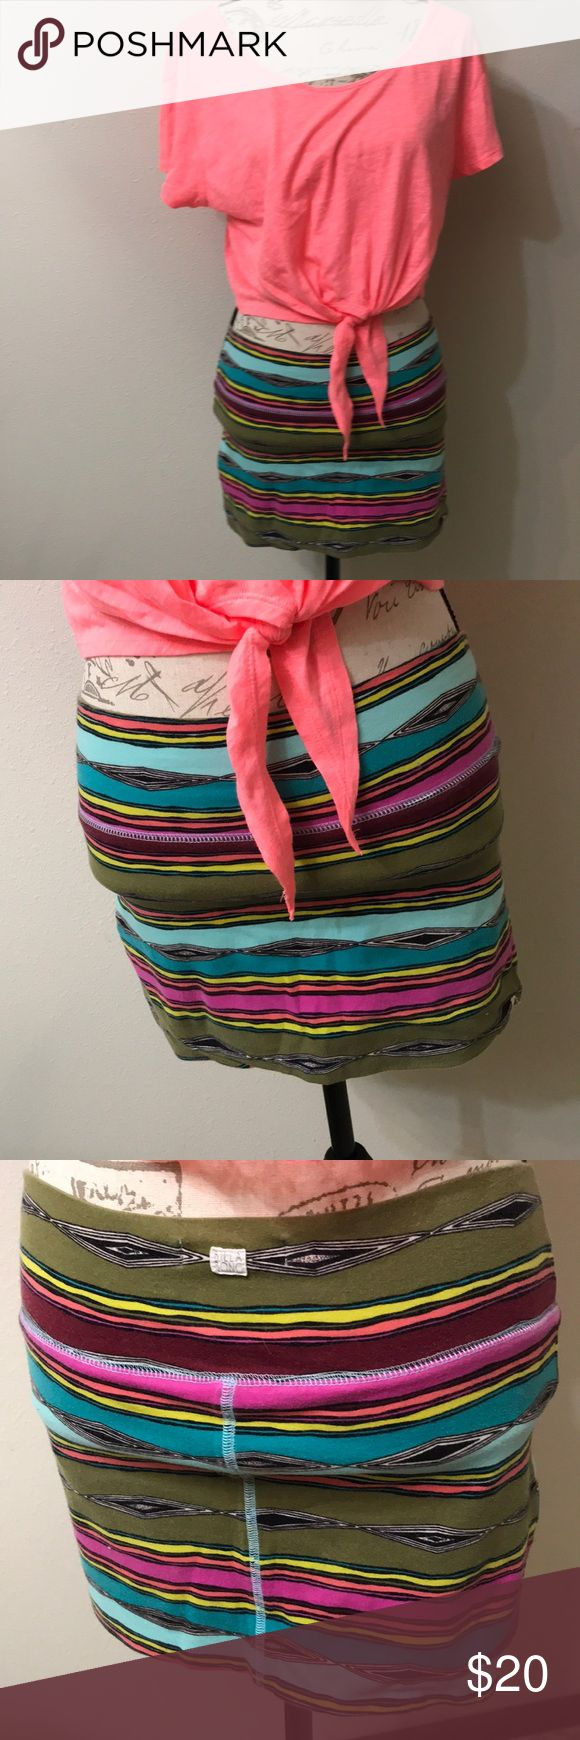 """Billabong mini skirt Super cute mini skirt! Thick fabric, never see through Sits on hips  Top also available in closet  Mannequin measurements: Bust-34"""" Waist-27"""" Hips-34"""" US-2/4  BE SURE TO BUNDLE YOUR LIKES FOR A PRIVATE OFFER! <3 Billabong Skirts Mini"""